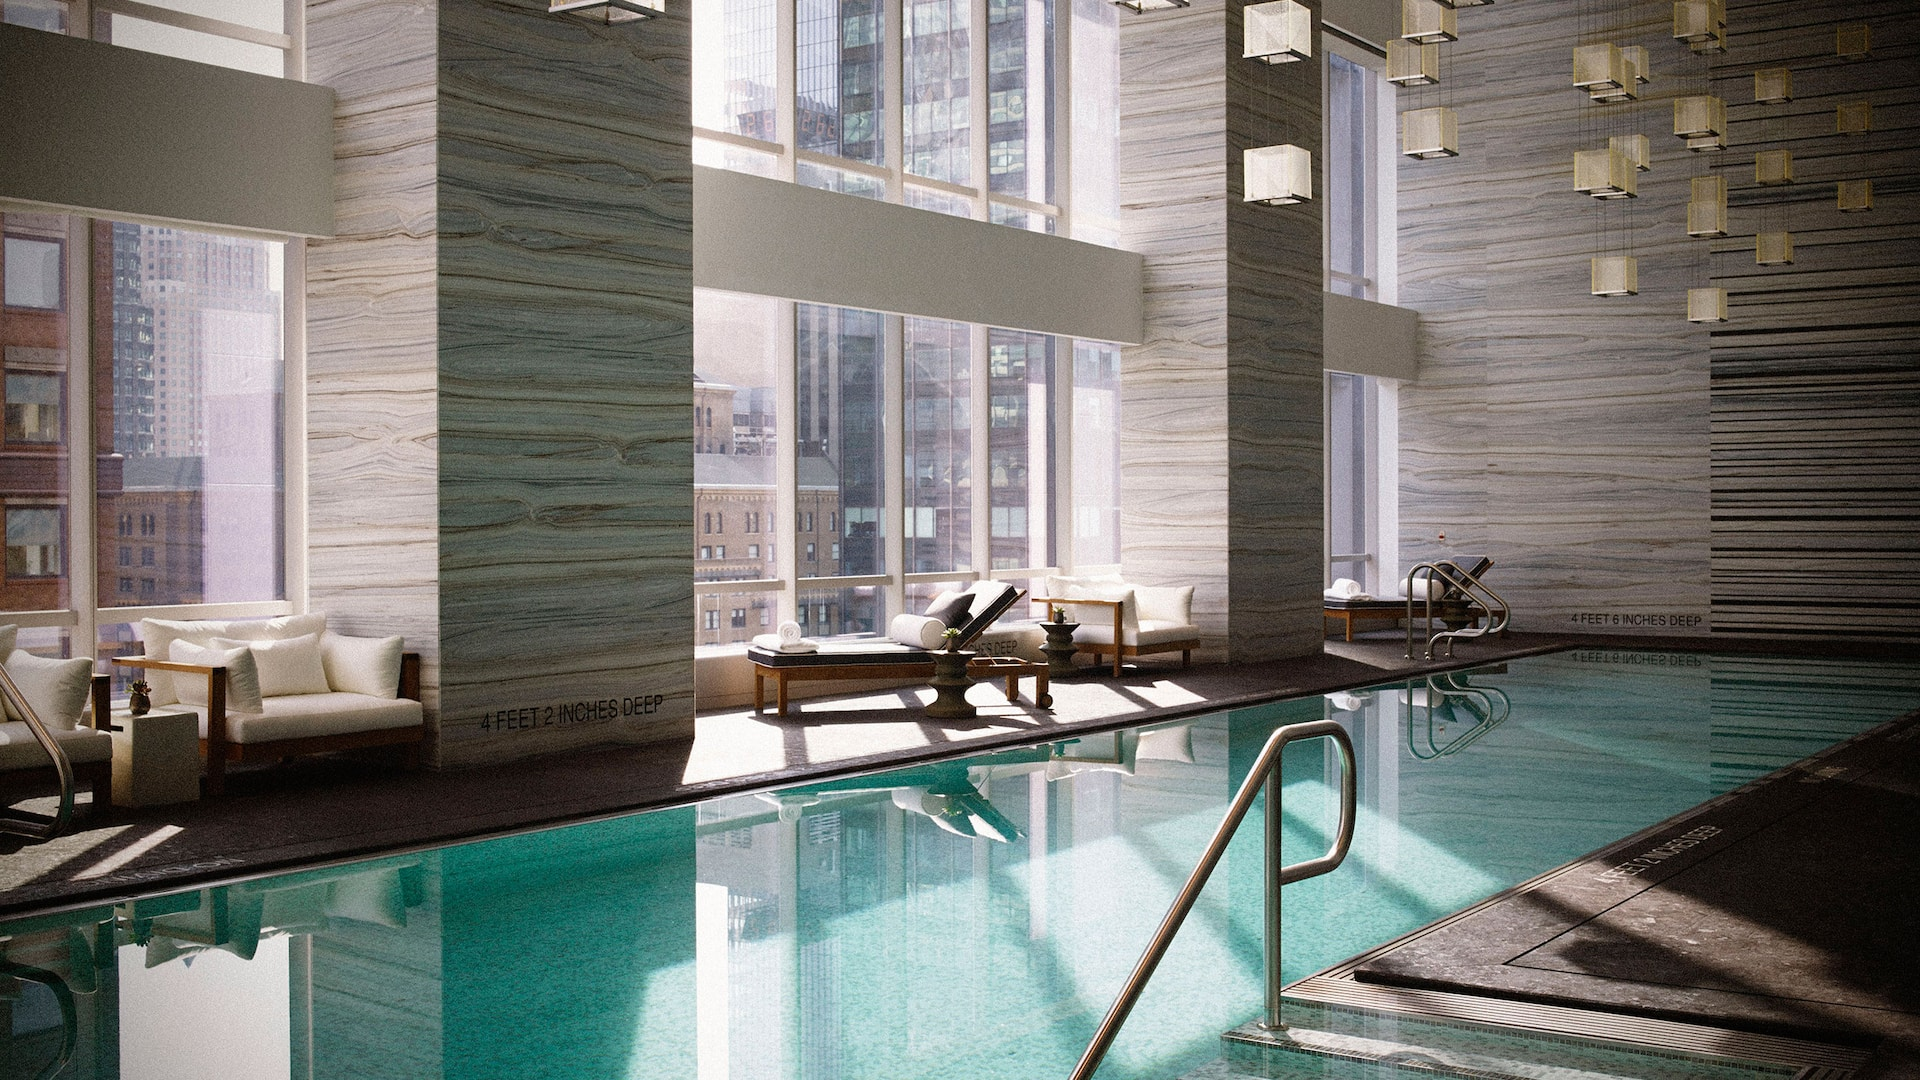 Indoor pool overlooking NYC